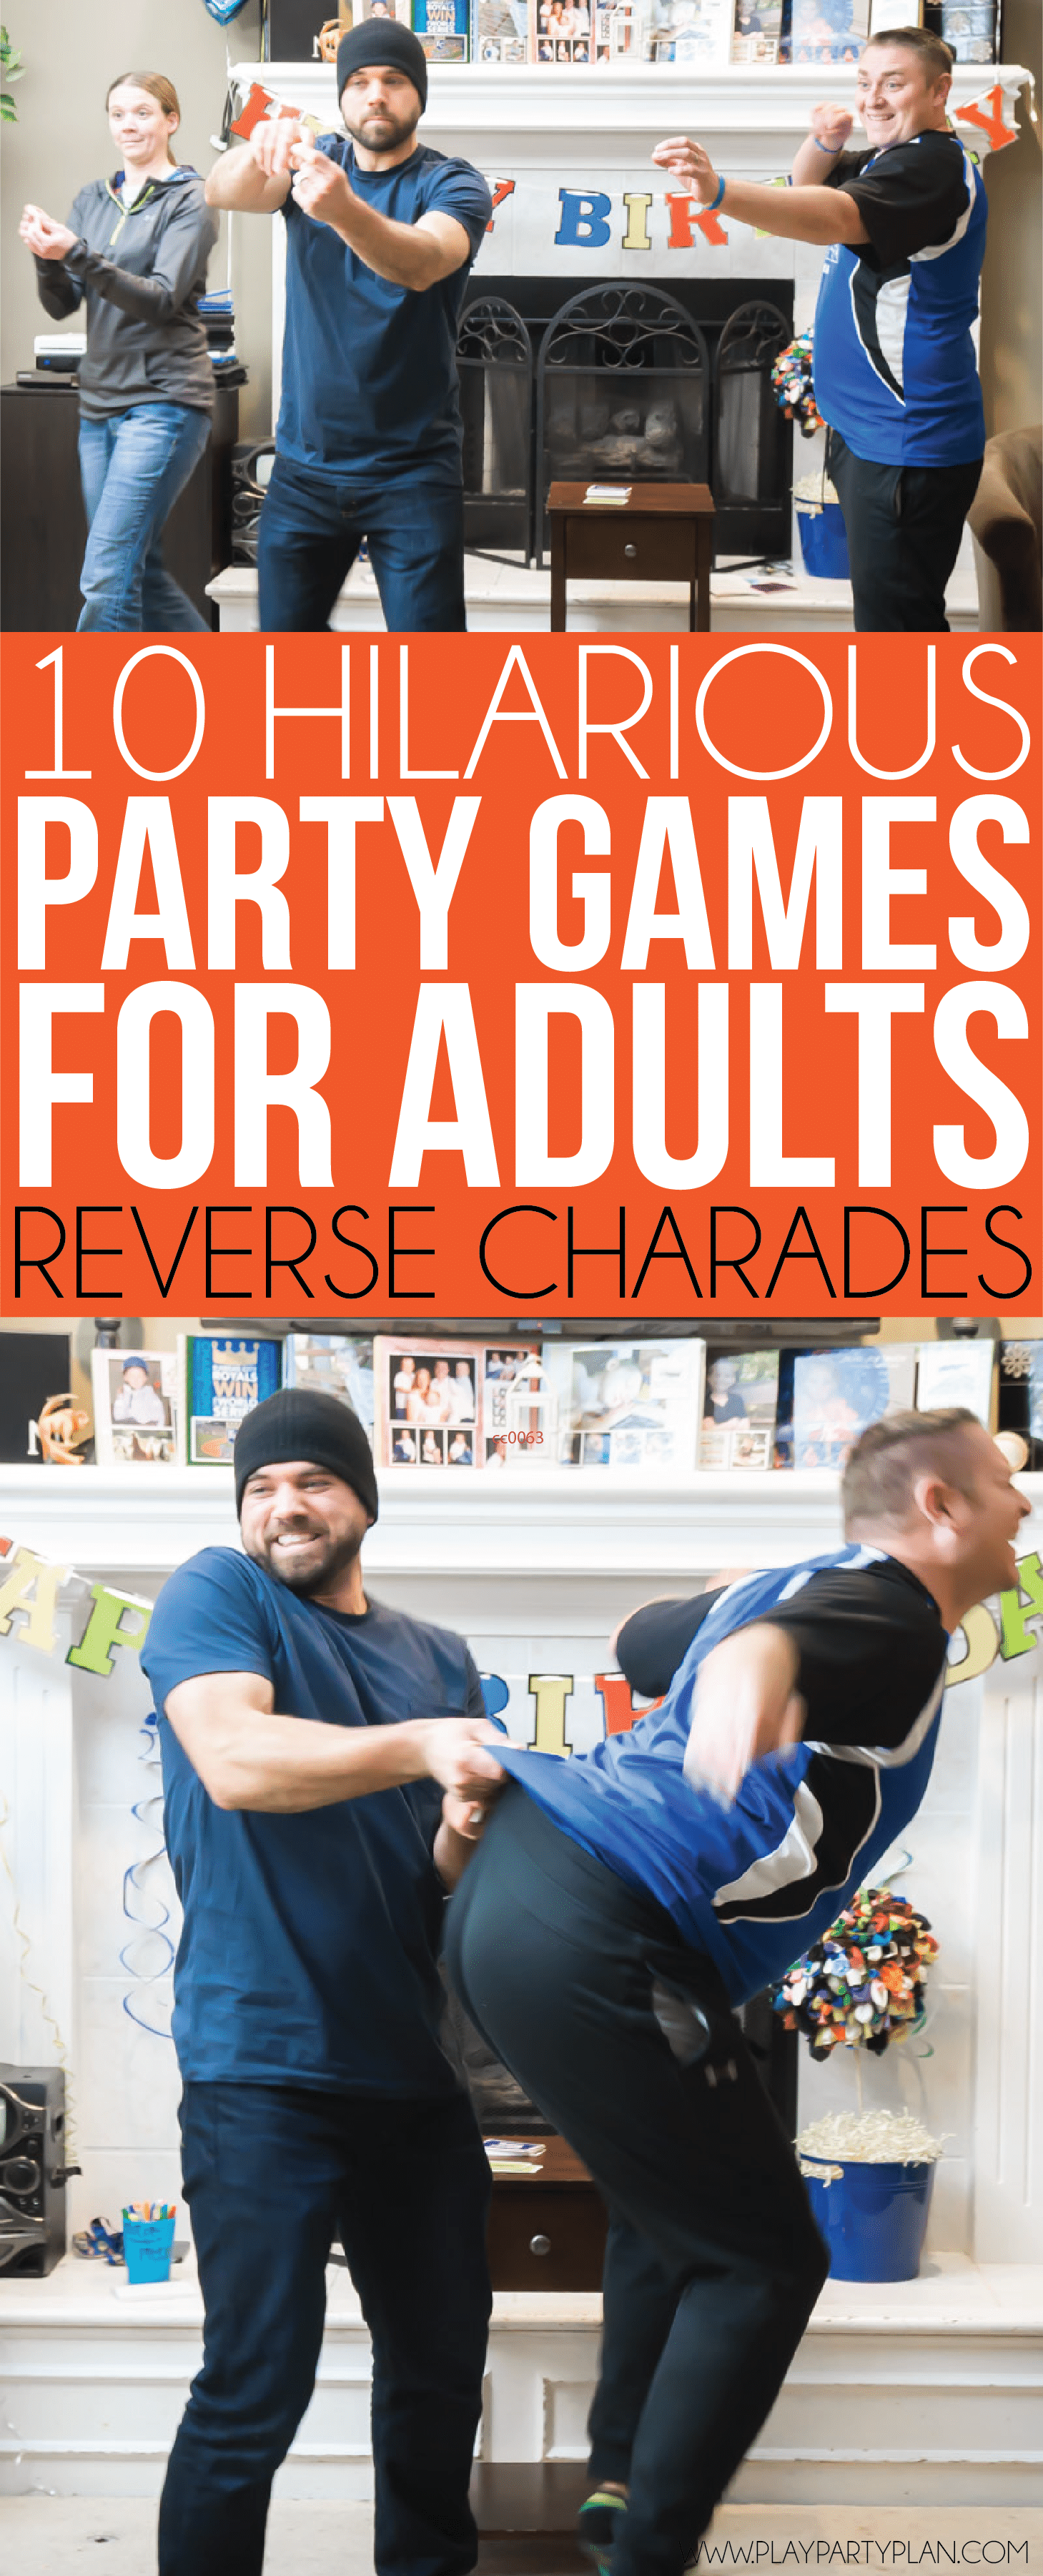 10 Hilarious Party Games for Adults that You've Probably